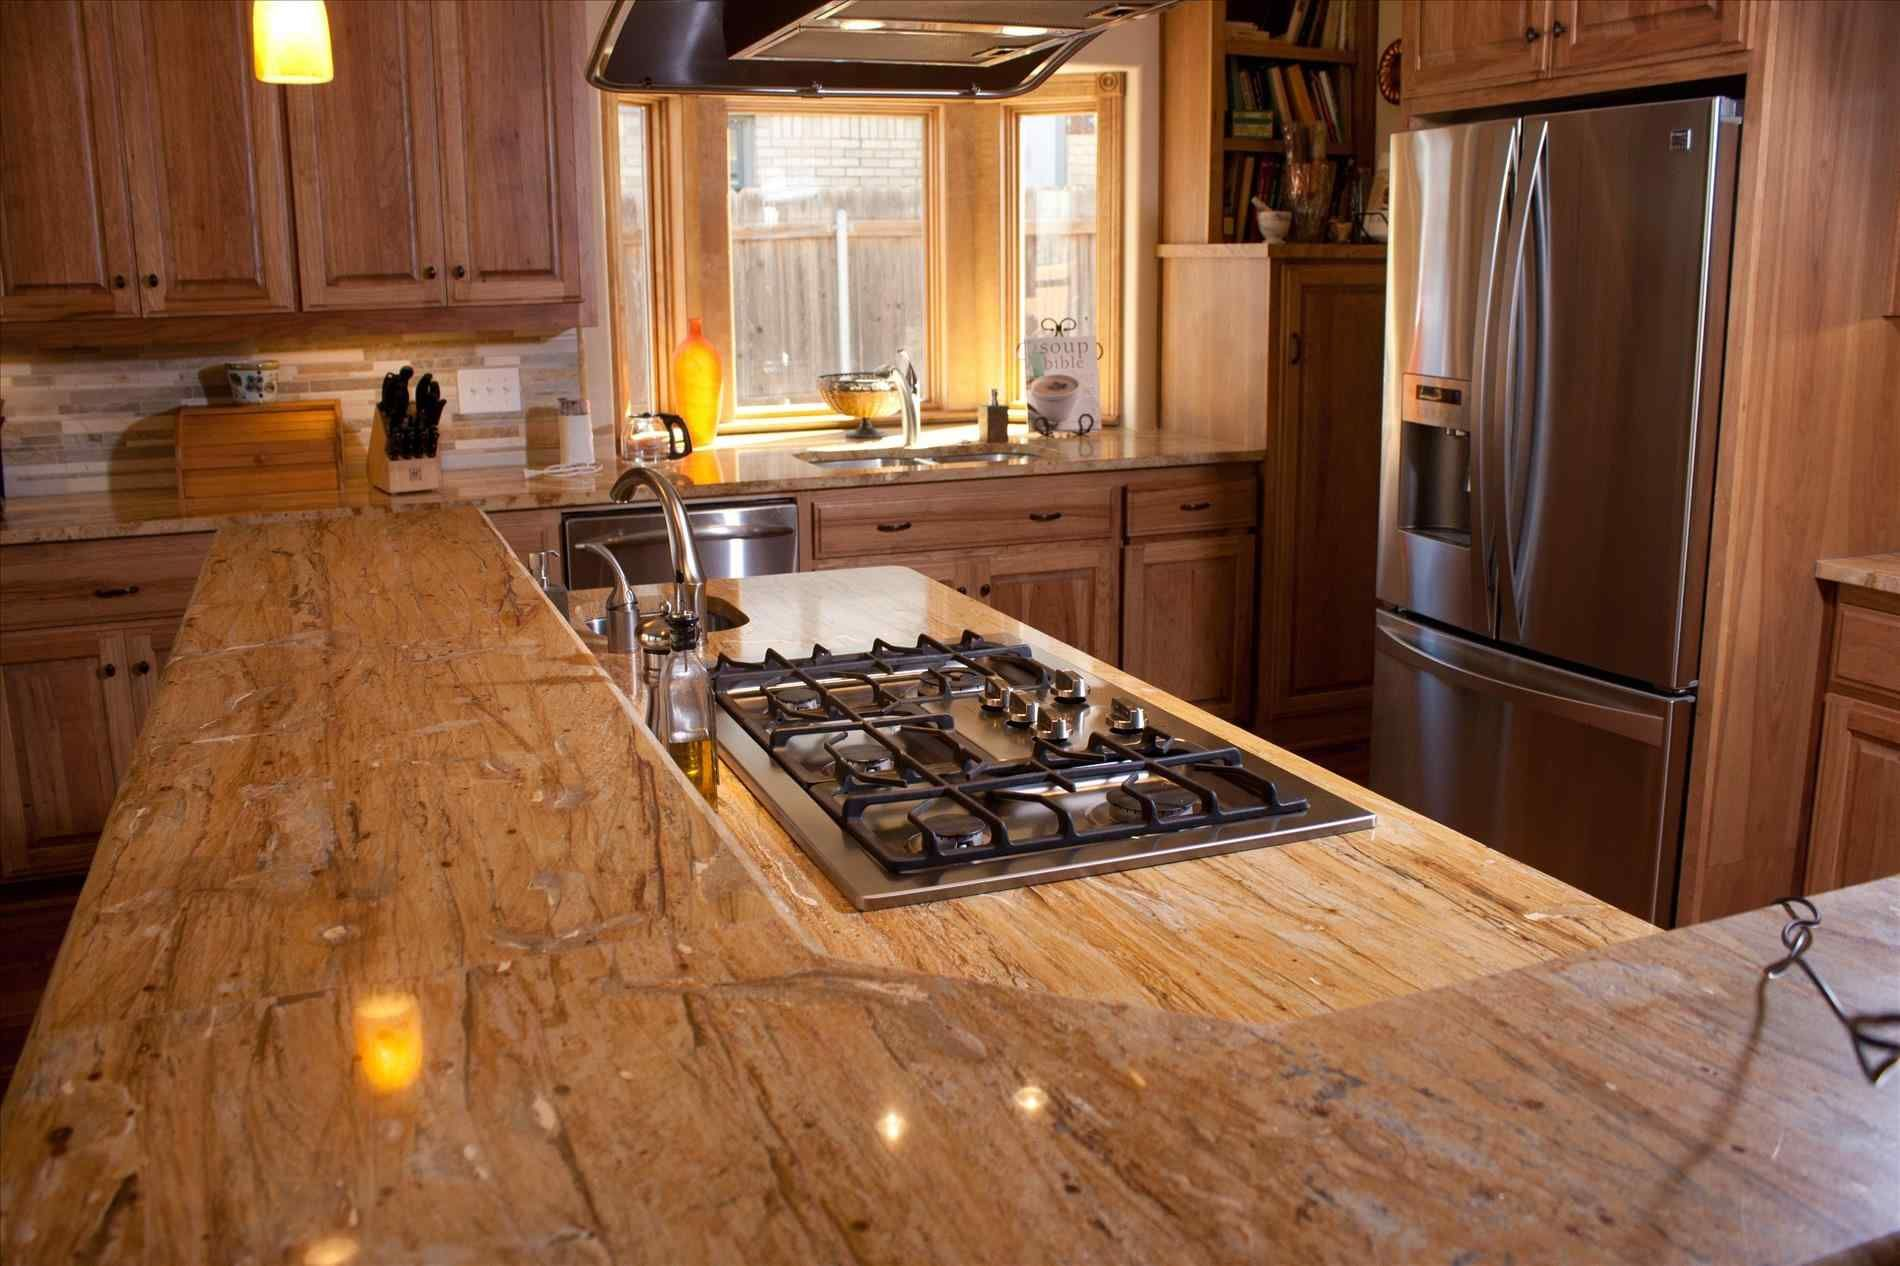 10 Top And Unique Inexpensive Countertop Ideas For Stunning